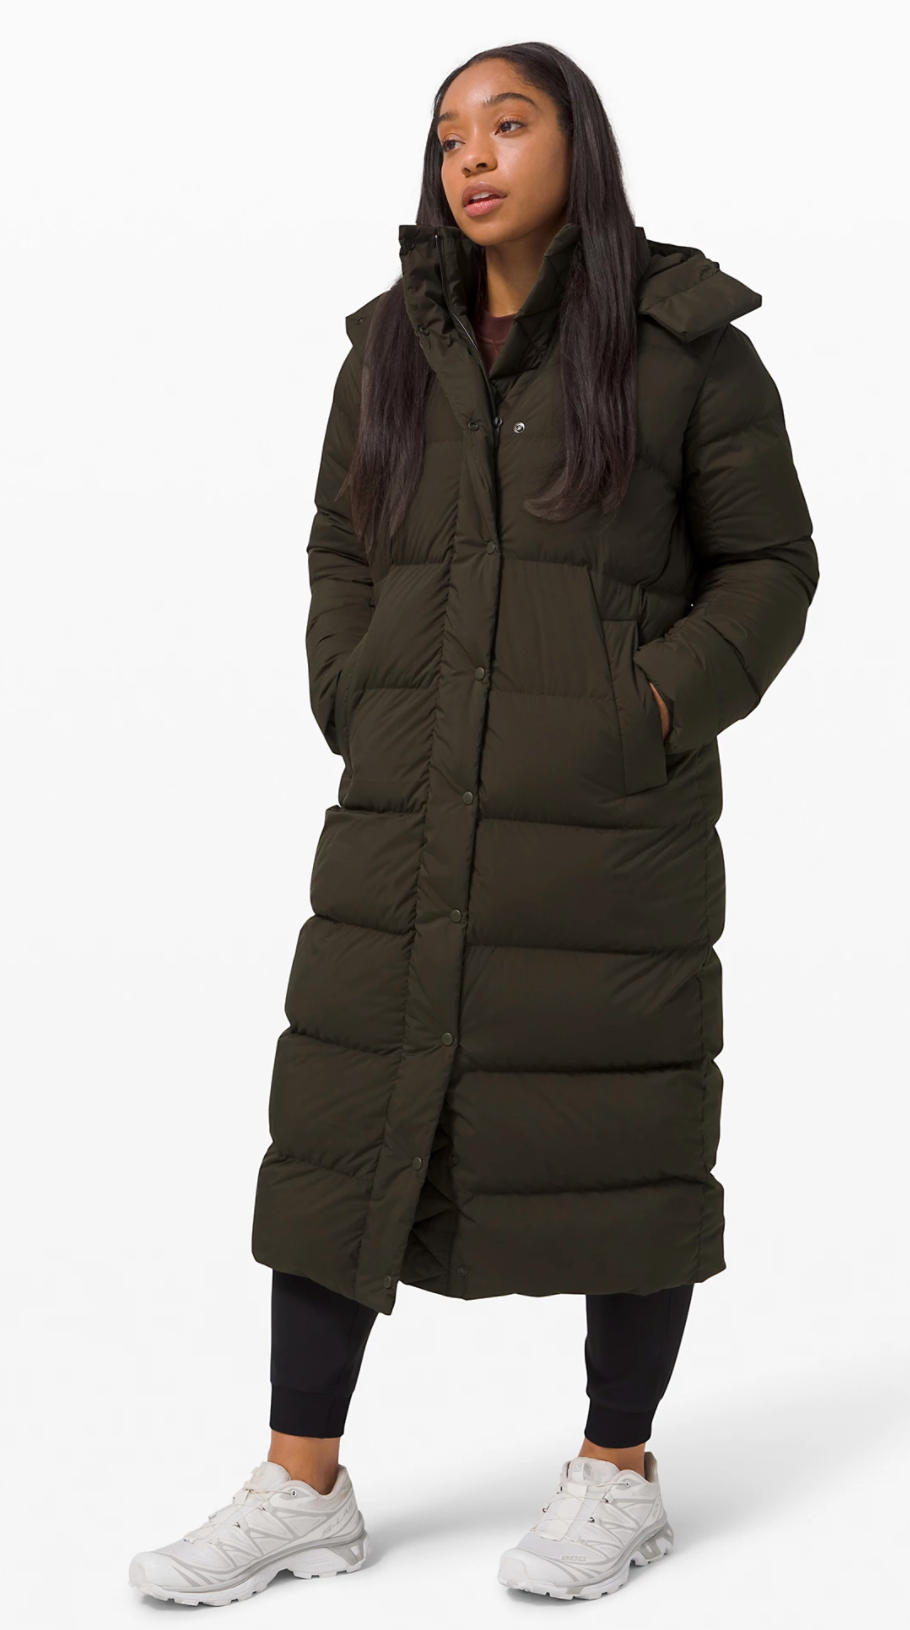 Wunder Puff Jacket Long in Dark Olive (Photo via Lululemon Athletica)